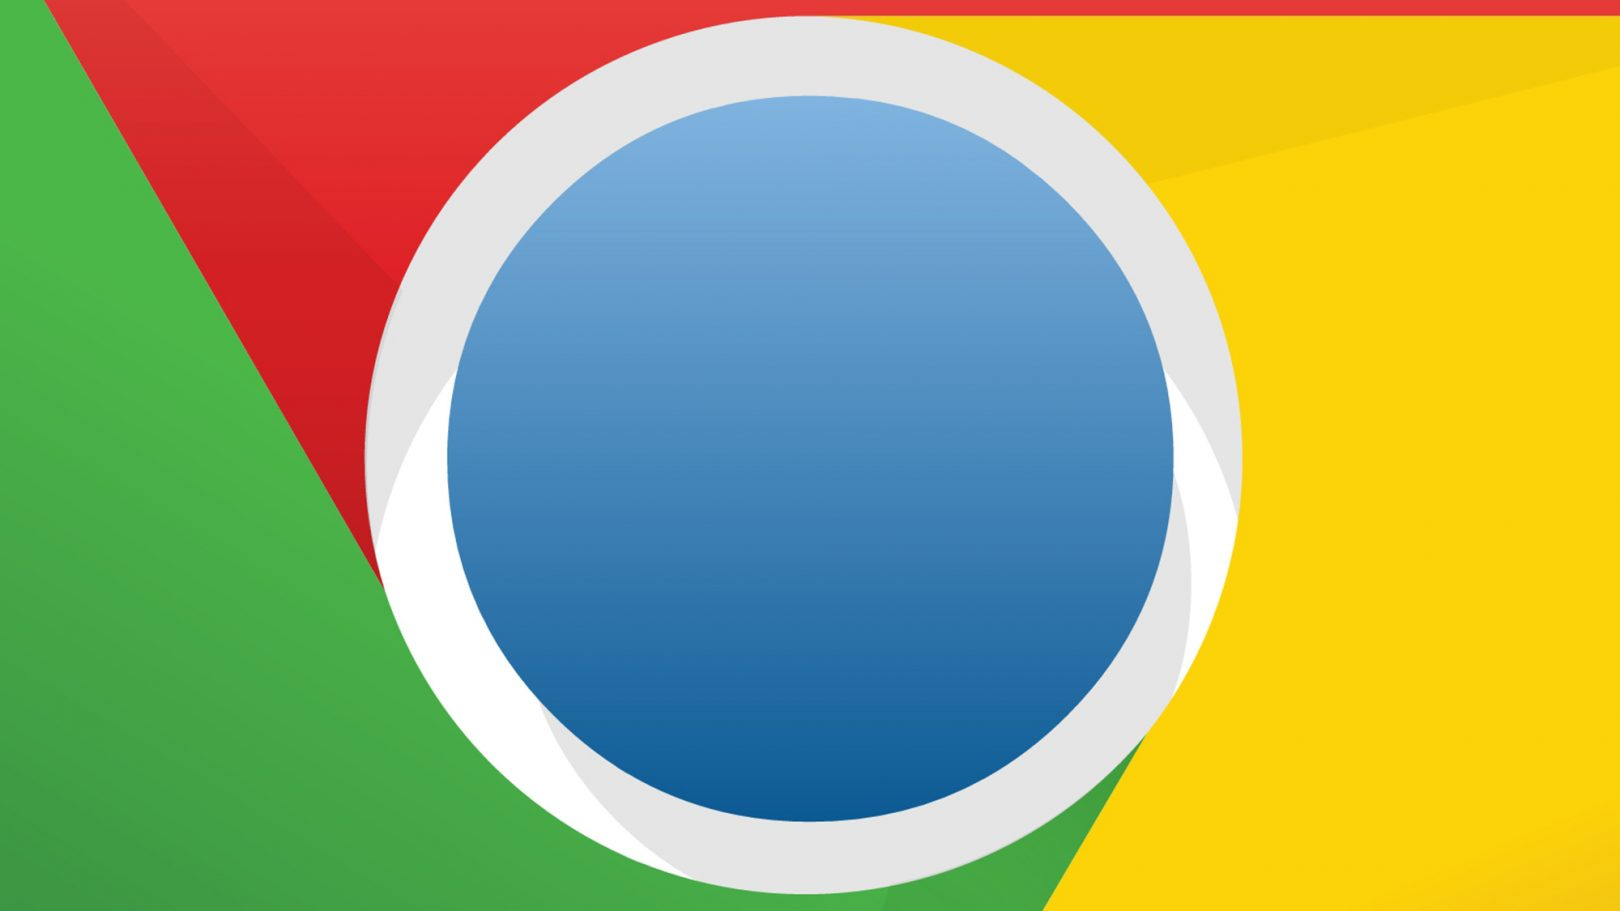 Google Chrome 76: What's new in the latest update? | Top Ten Reviews